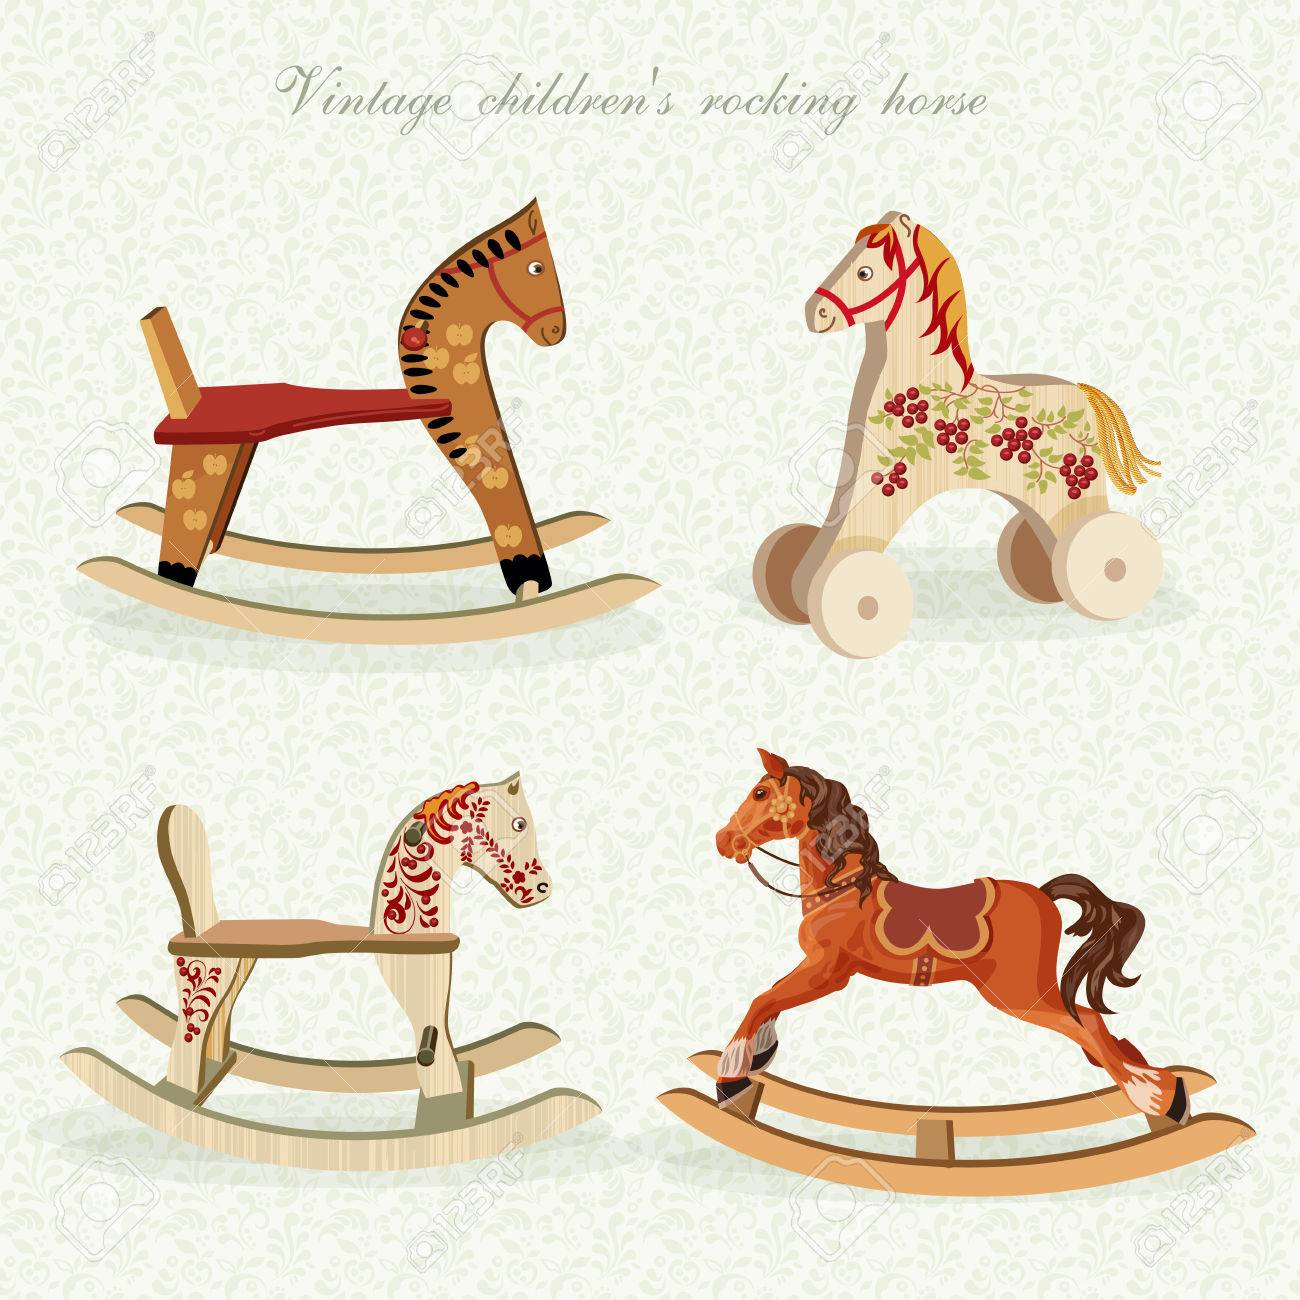 Set With Rocking Horses In Vintage Style Royalty Free Cliparts Vectors And Stock Illustration Image 35042992